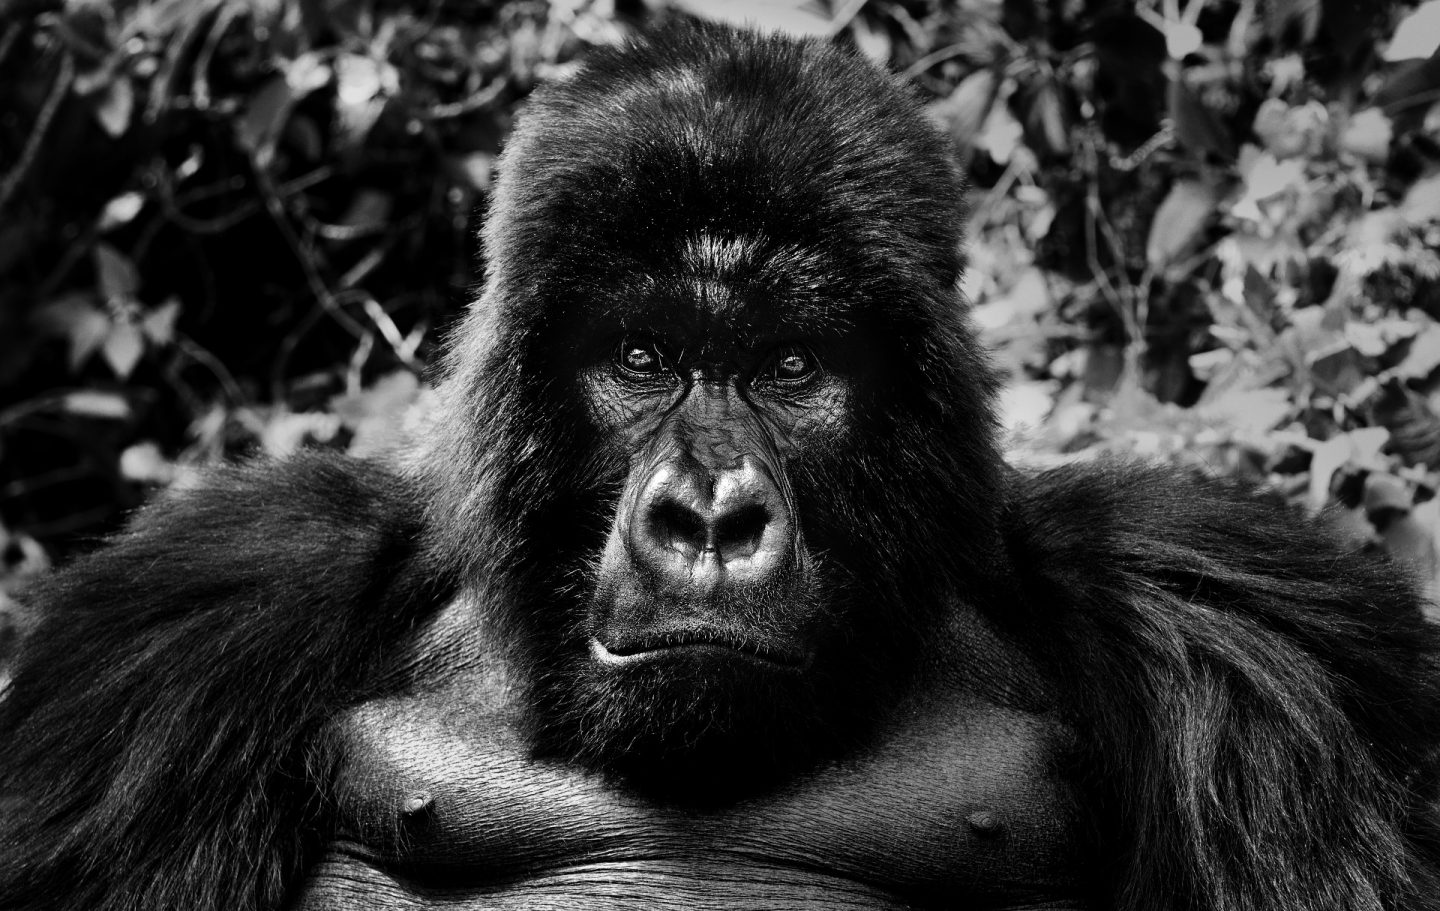 King Kong © David Yarrow